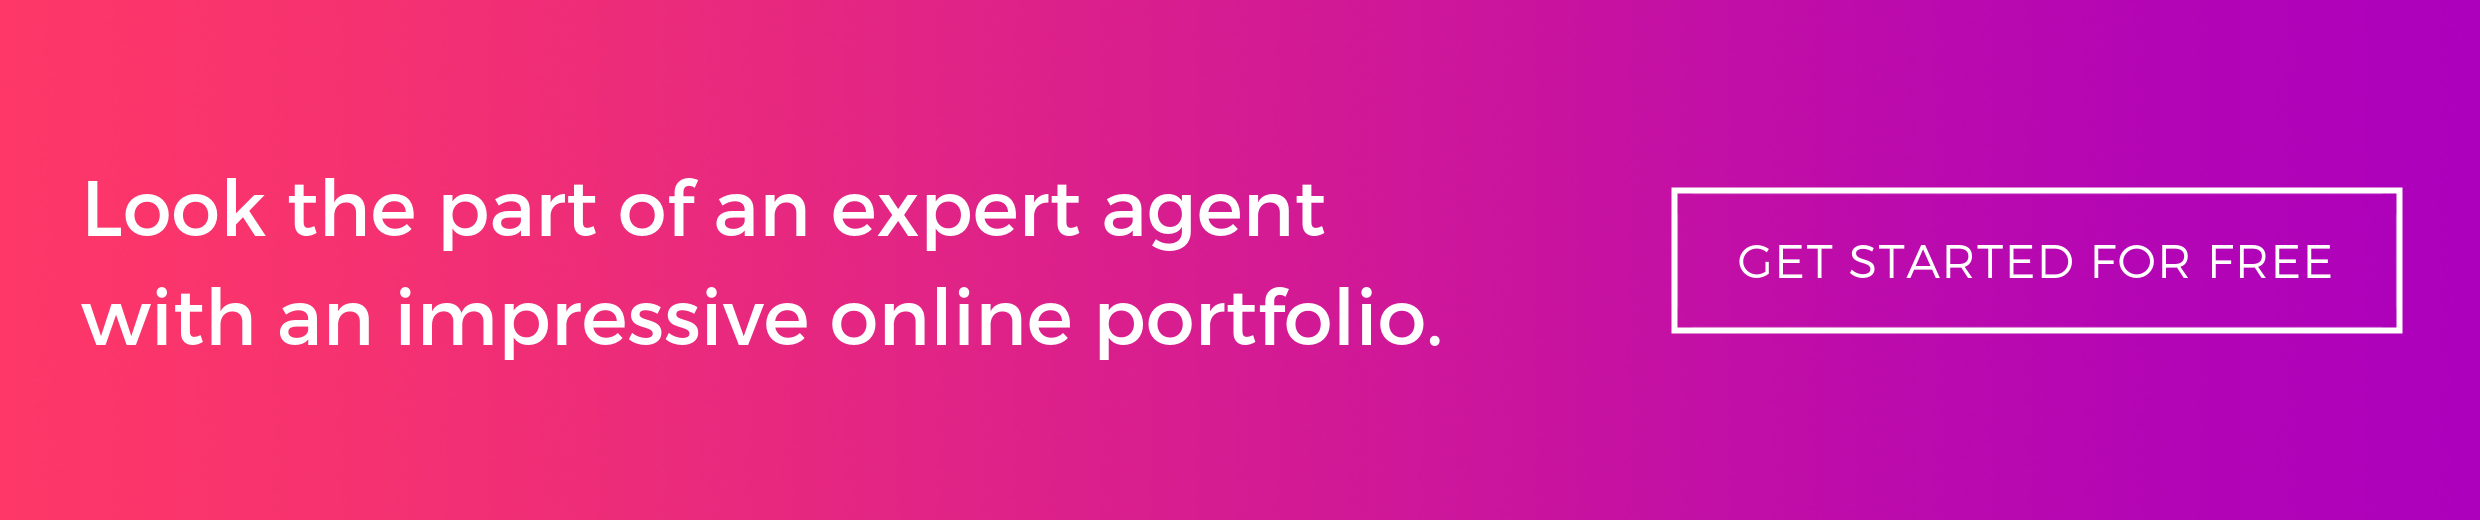 Look the part of an expert agent with an impressive online portfolio